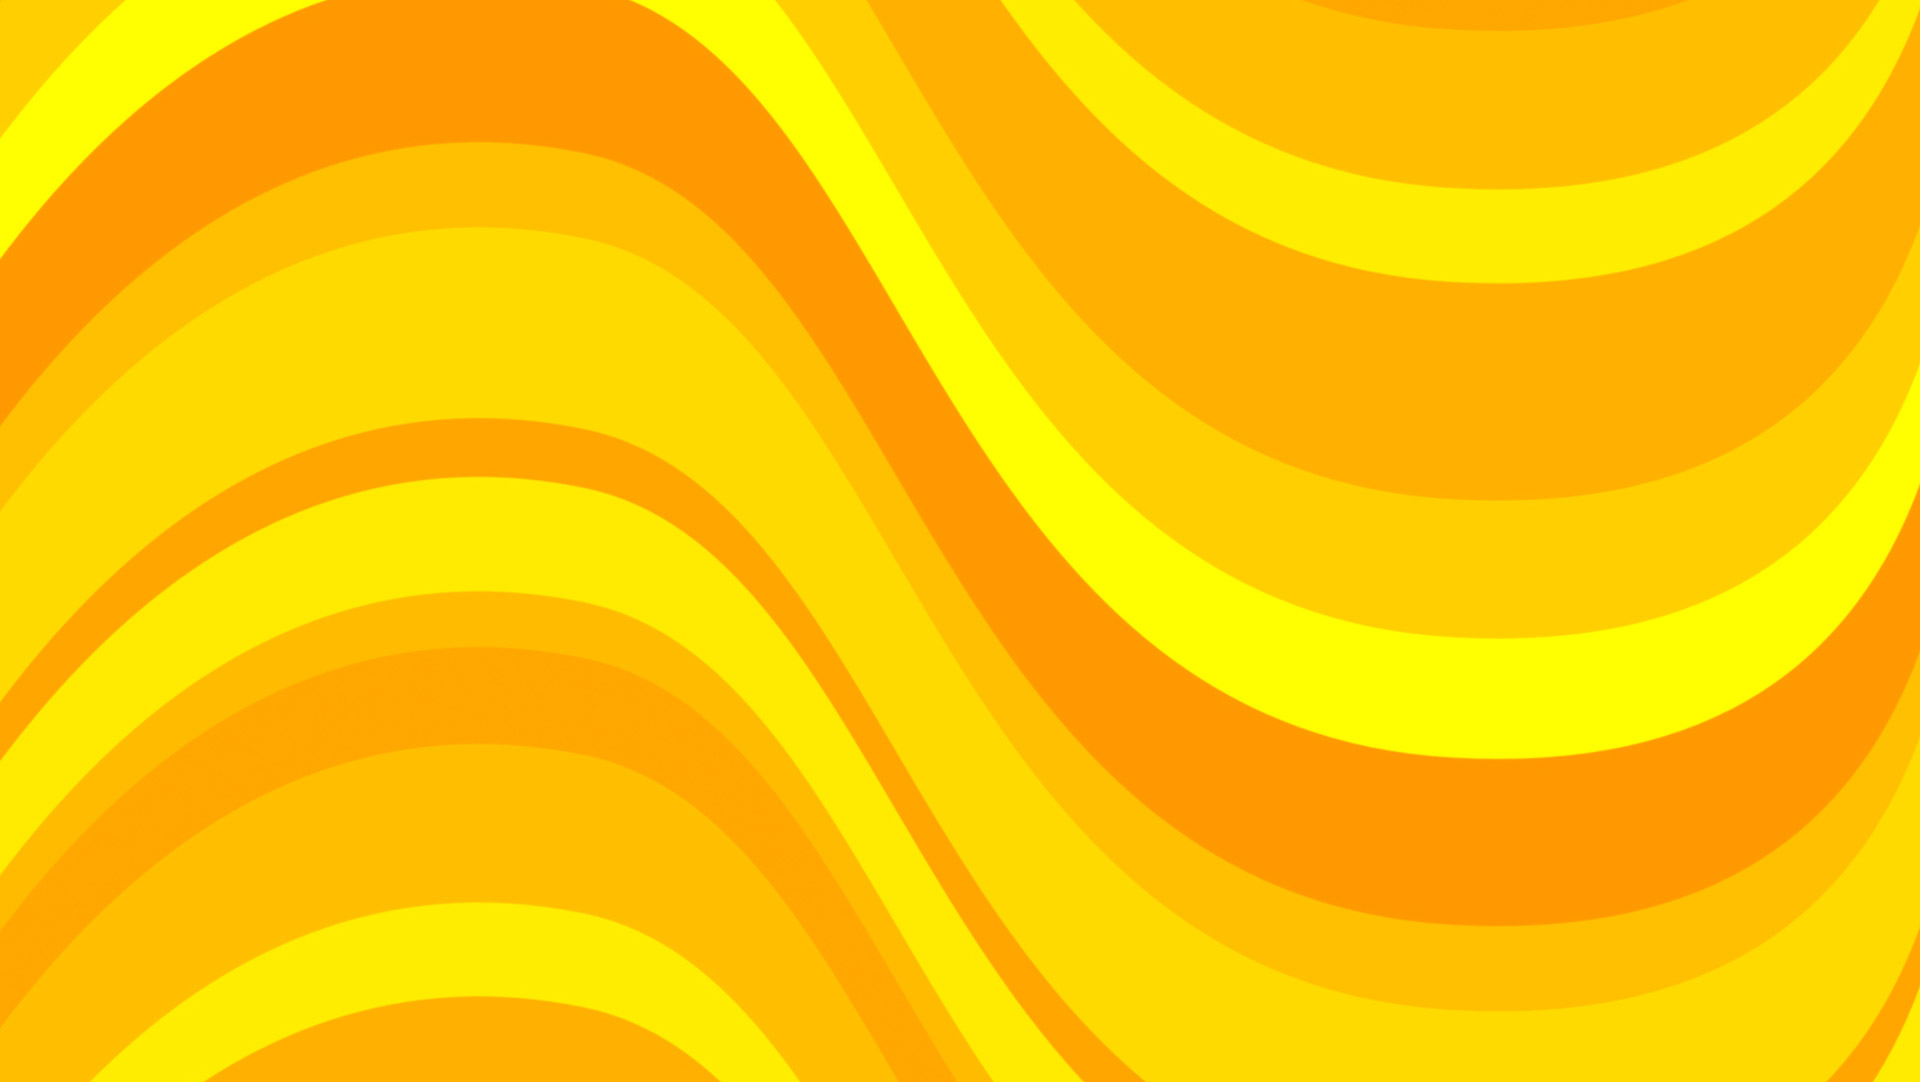 template background yellow